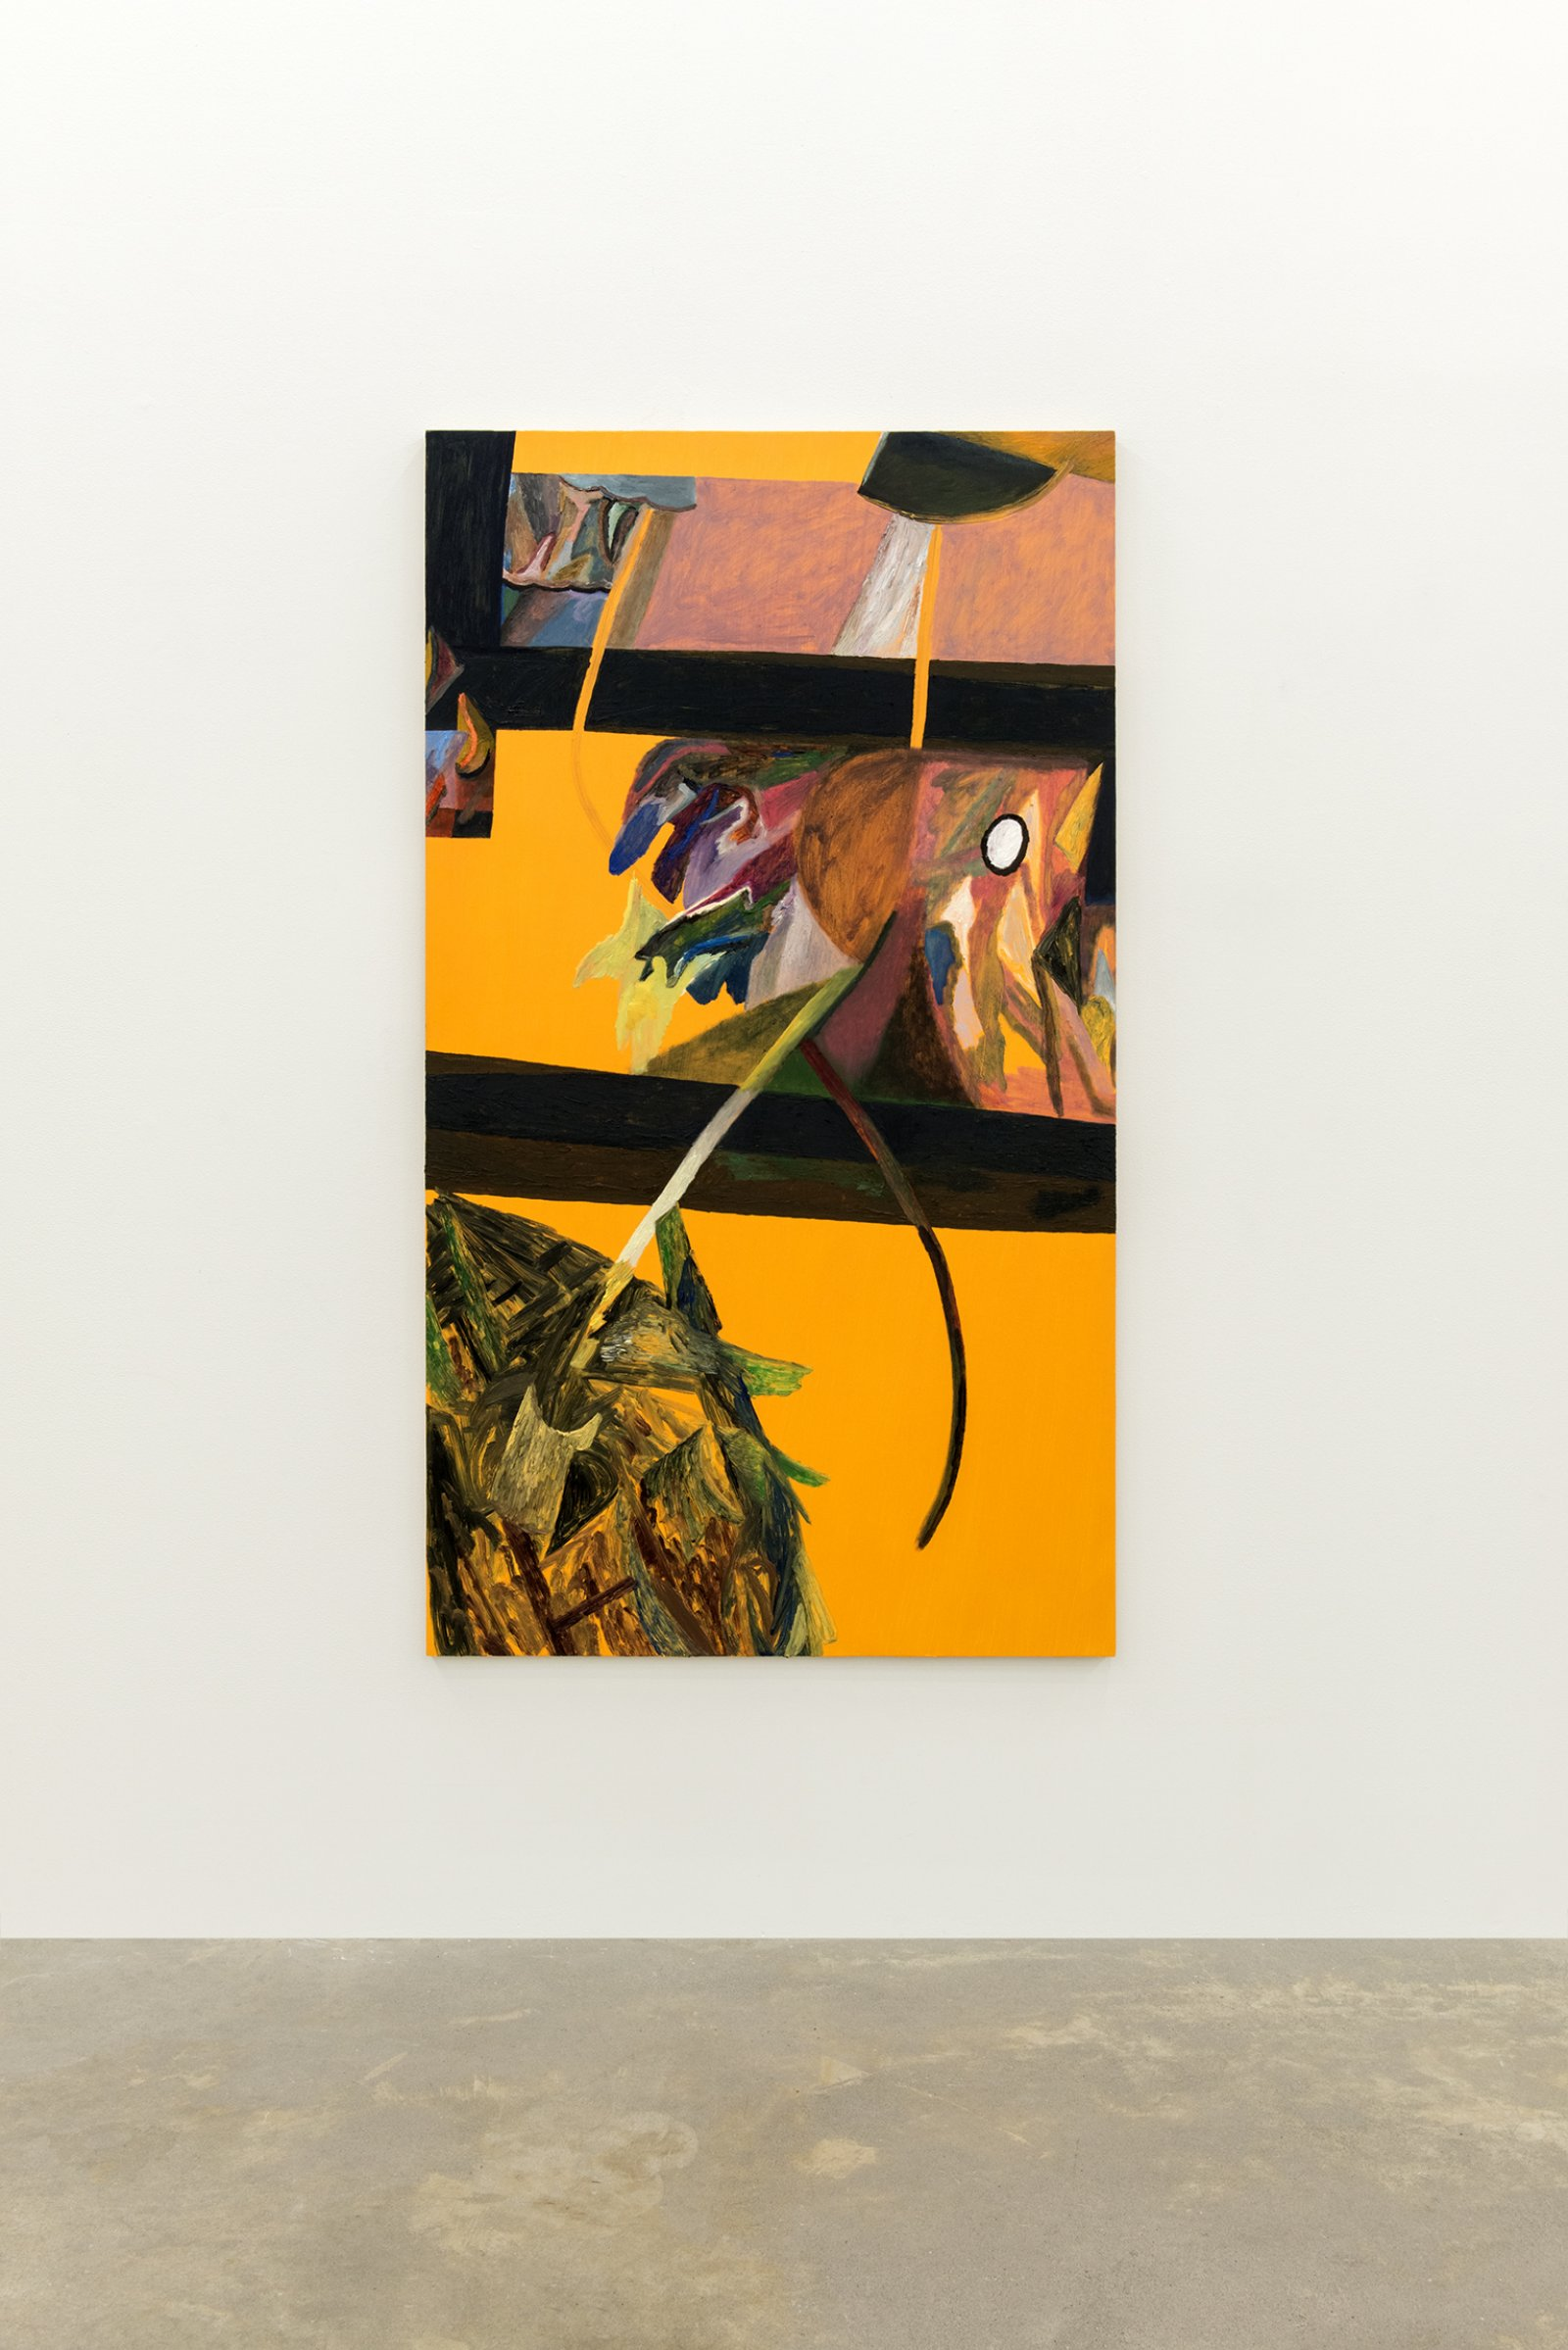 Rebecca Brewer, The Fence, 2014, oil on panel, 69 x 38 in. (174 x 97 cm) by Rebecca Brewer